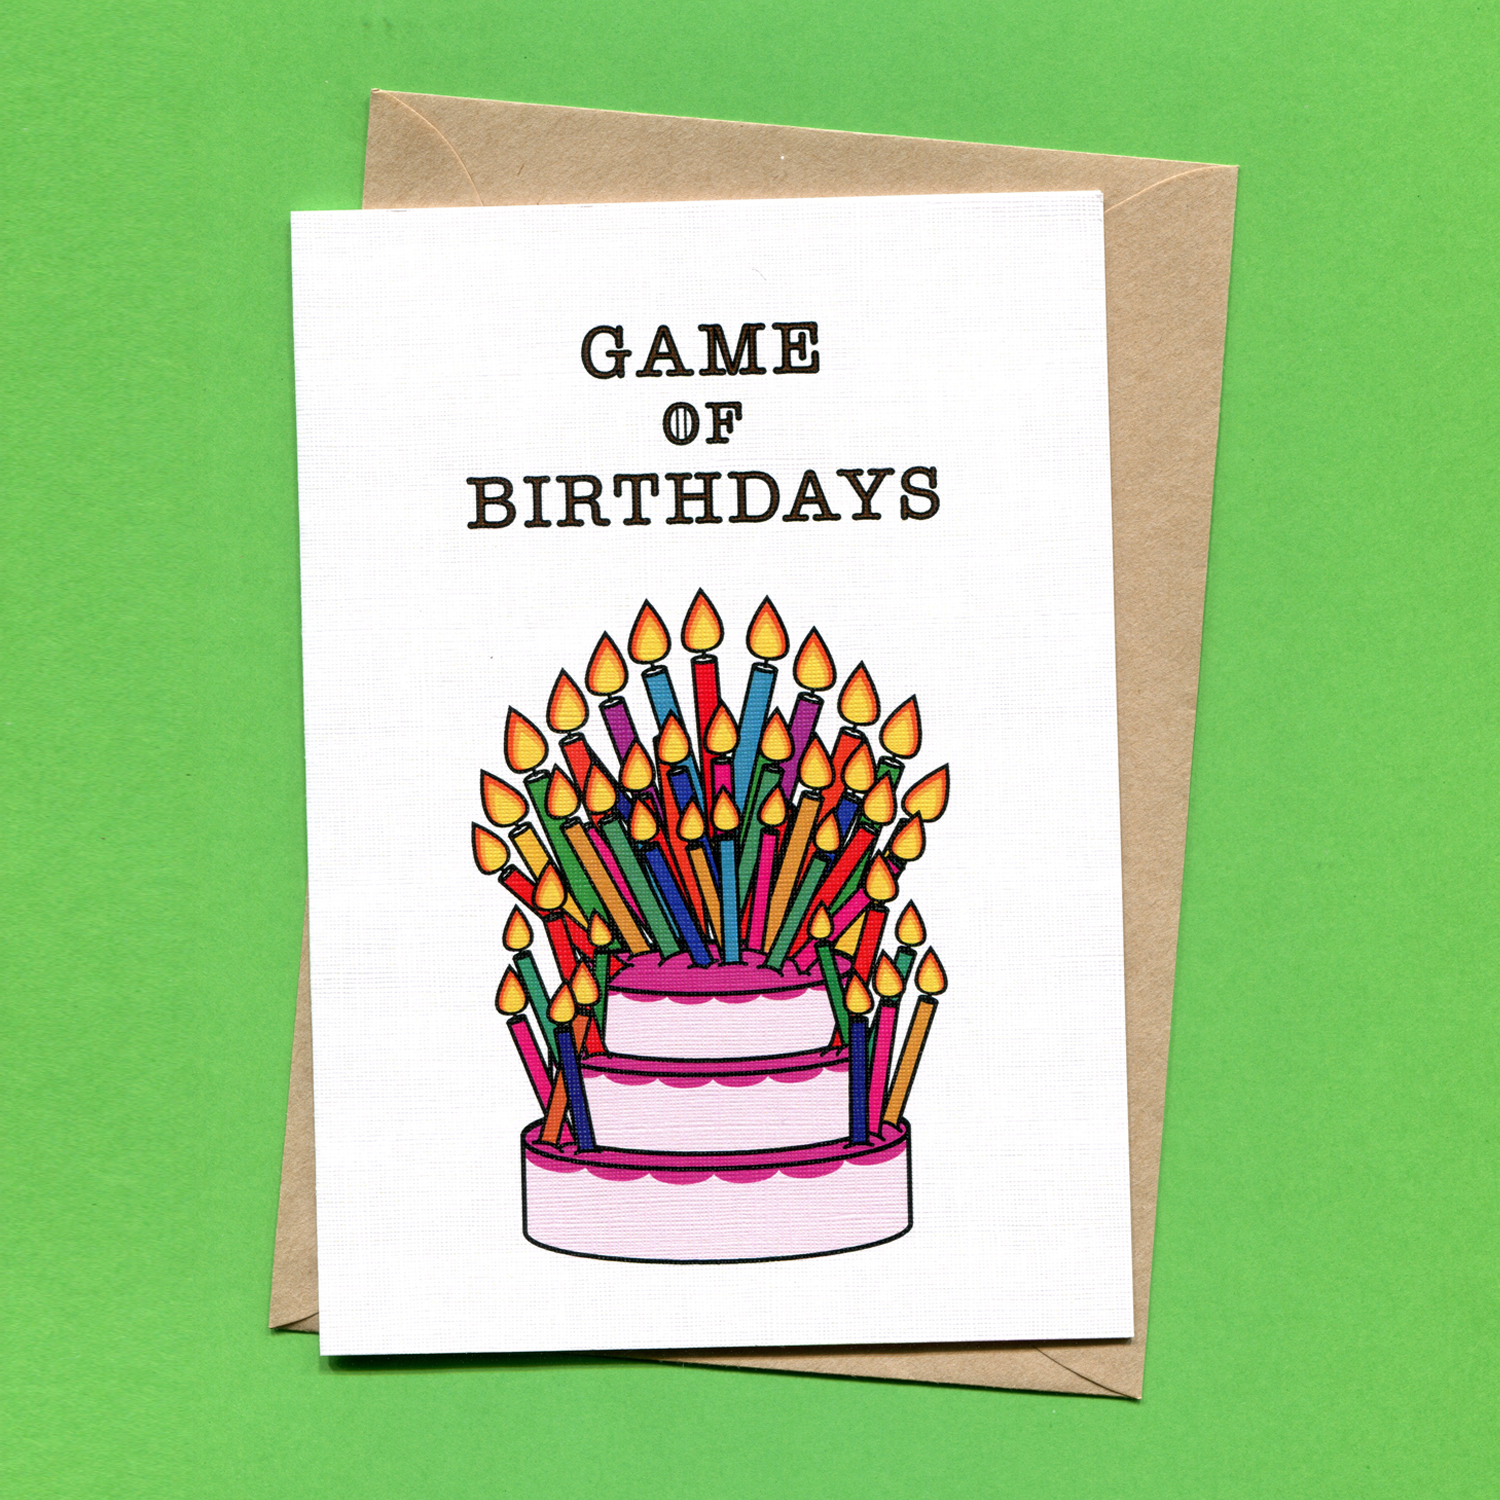 Catalogue_Things by Bean Game of Birthdays Greeting Card.jpg